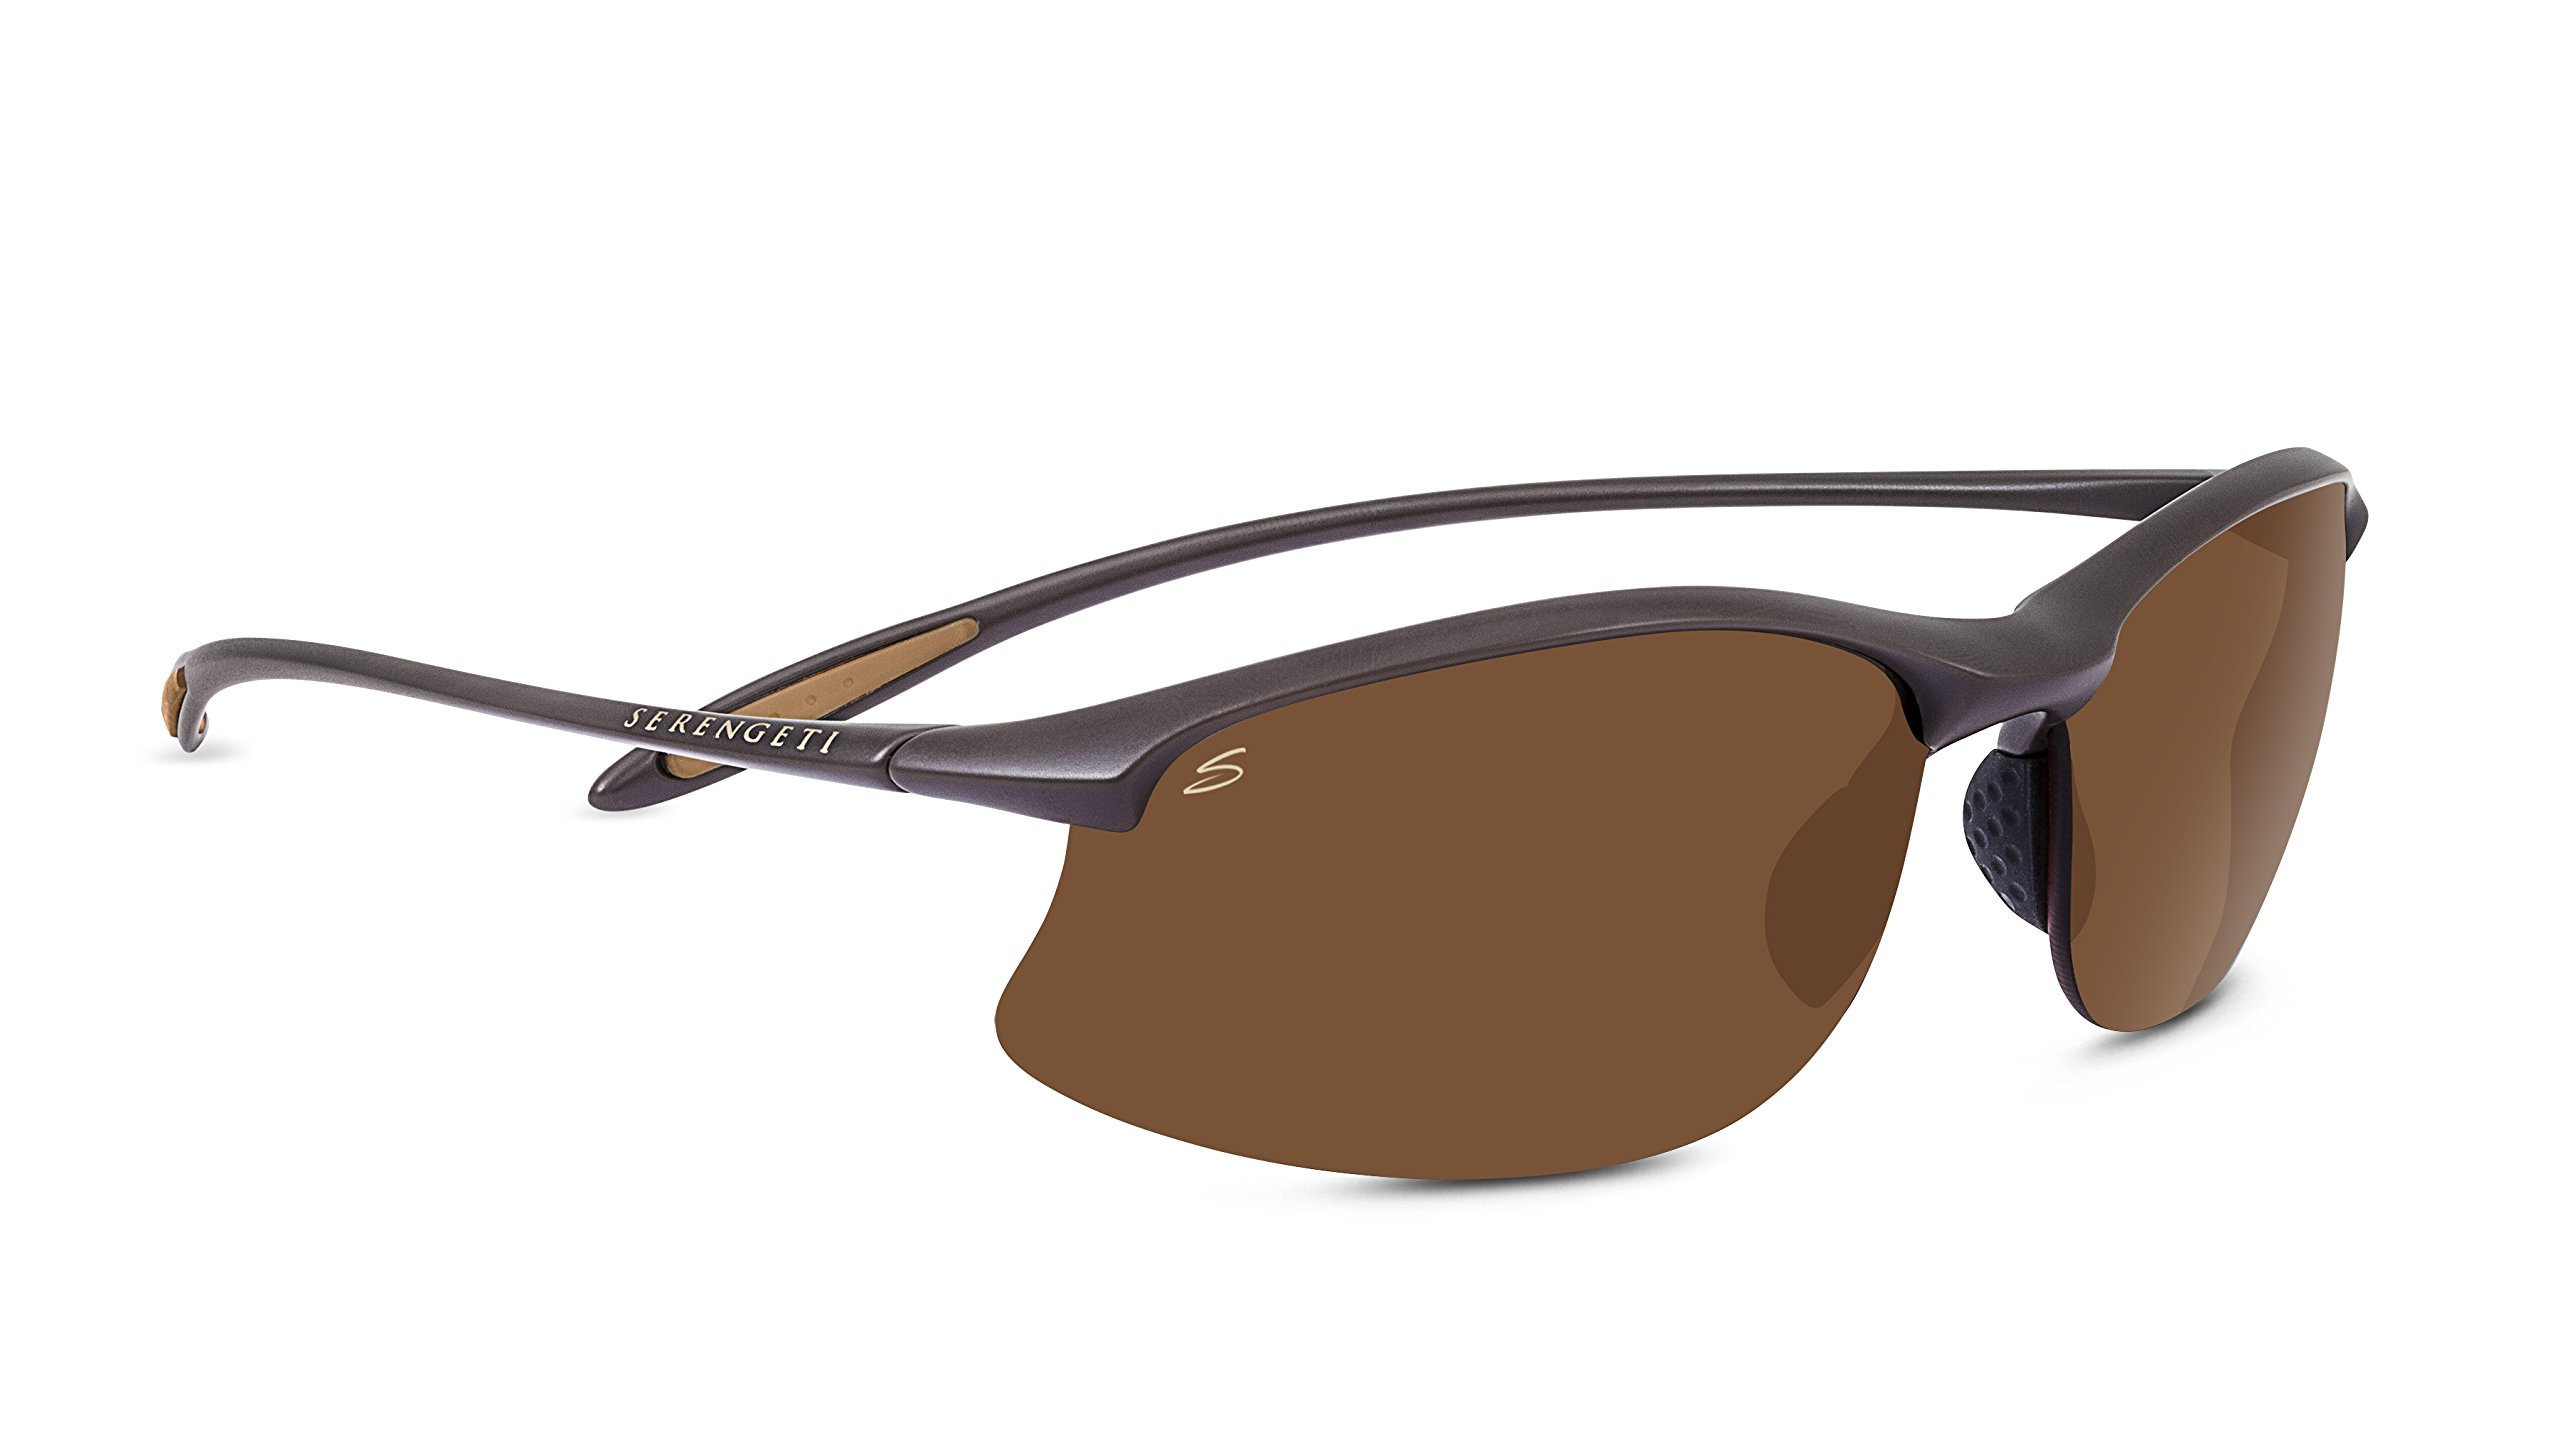 Serengeti Maestrale Polar PhD Drivers Sunglasses, Sanded Dark Brown by Serengeti